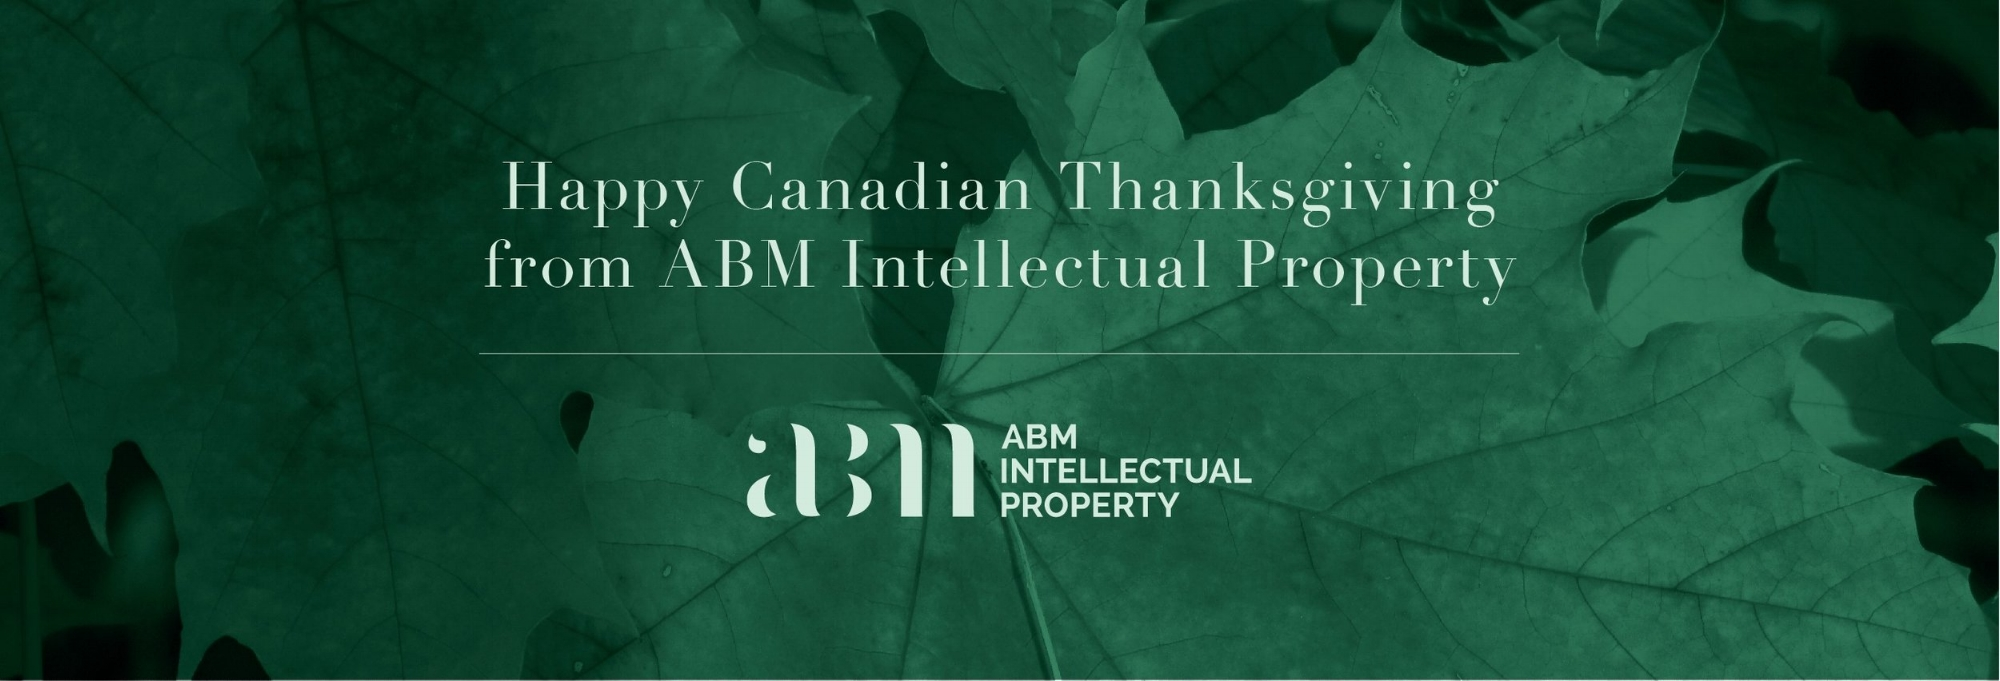 ABM IP wishes you a happy Canadian Thanksgiving! Please note as this is a statutory holiday, the Canadian Intellectual Property Office will be closed on Monday October 8, 2018.